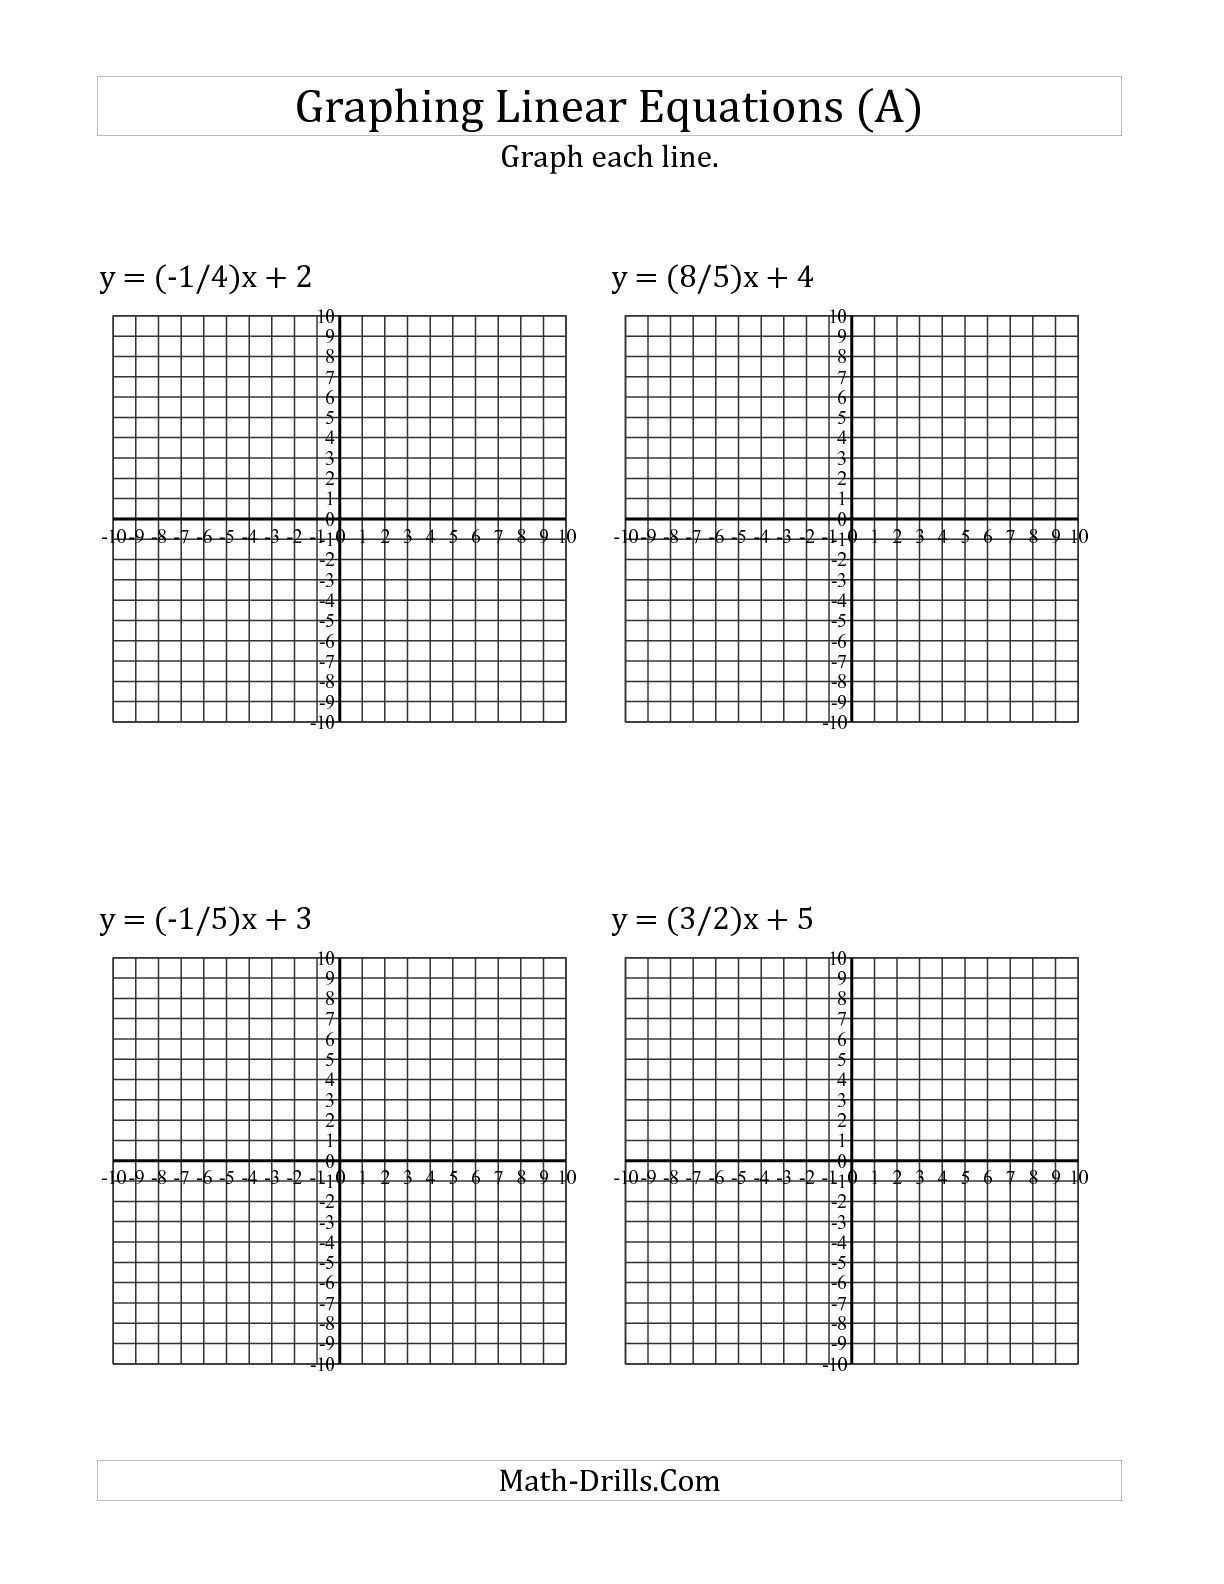 Graphing Linear Inequalities Worksheet Answers 59 Graphing Pound Inequalities Worksheet Graphics In 2020